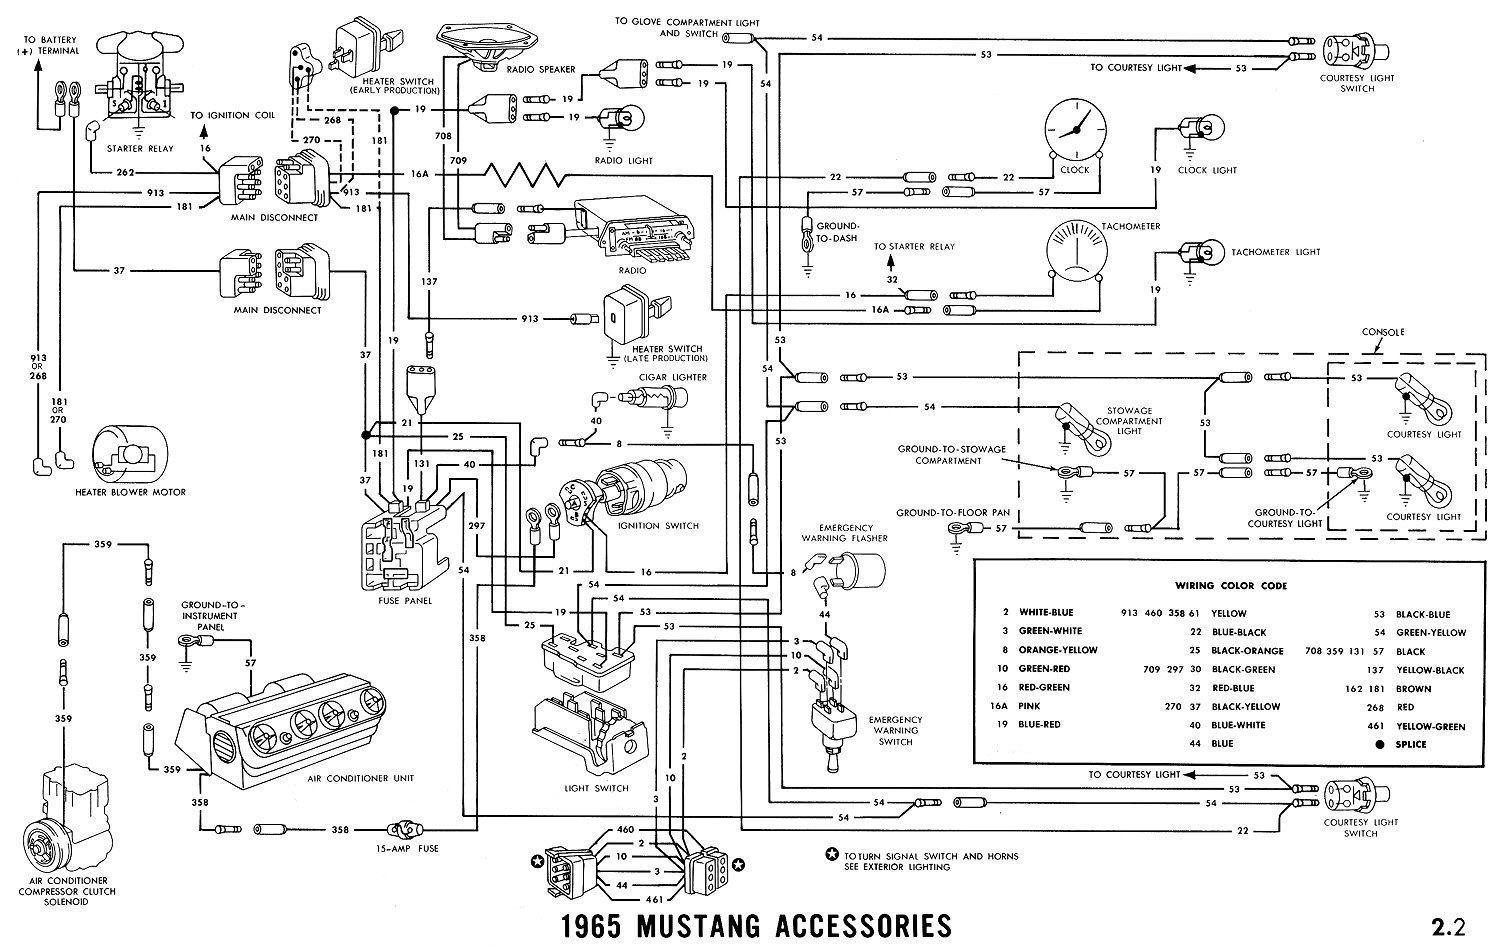 1965 Mustang Wiring Diagrams - Average Joe Restoration - 1965 Mustang Wiring Diagram